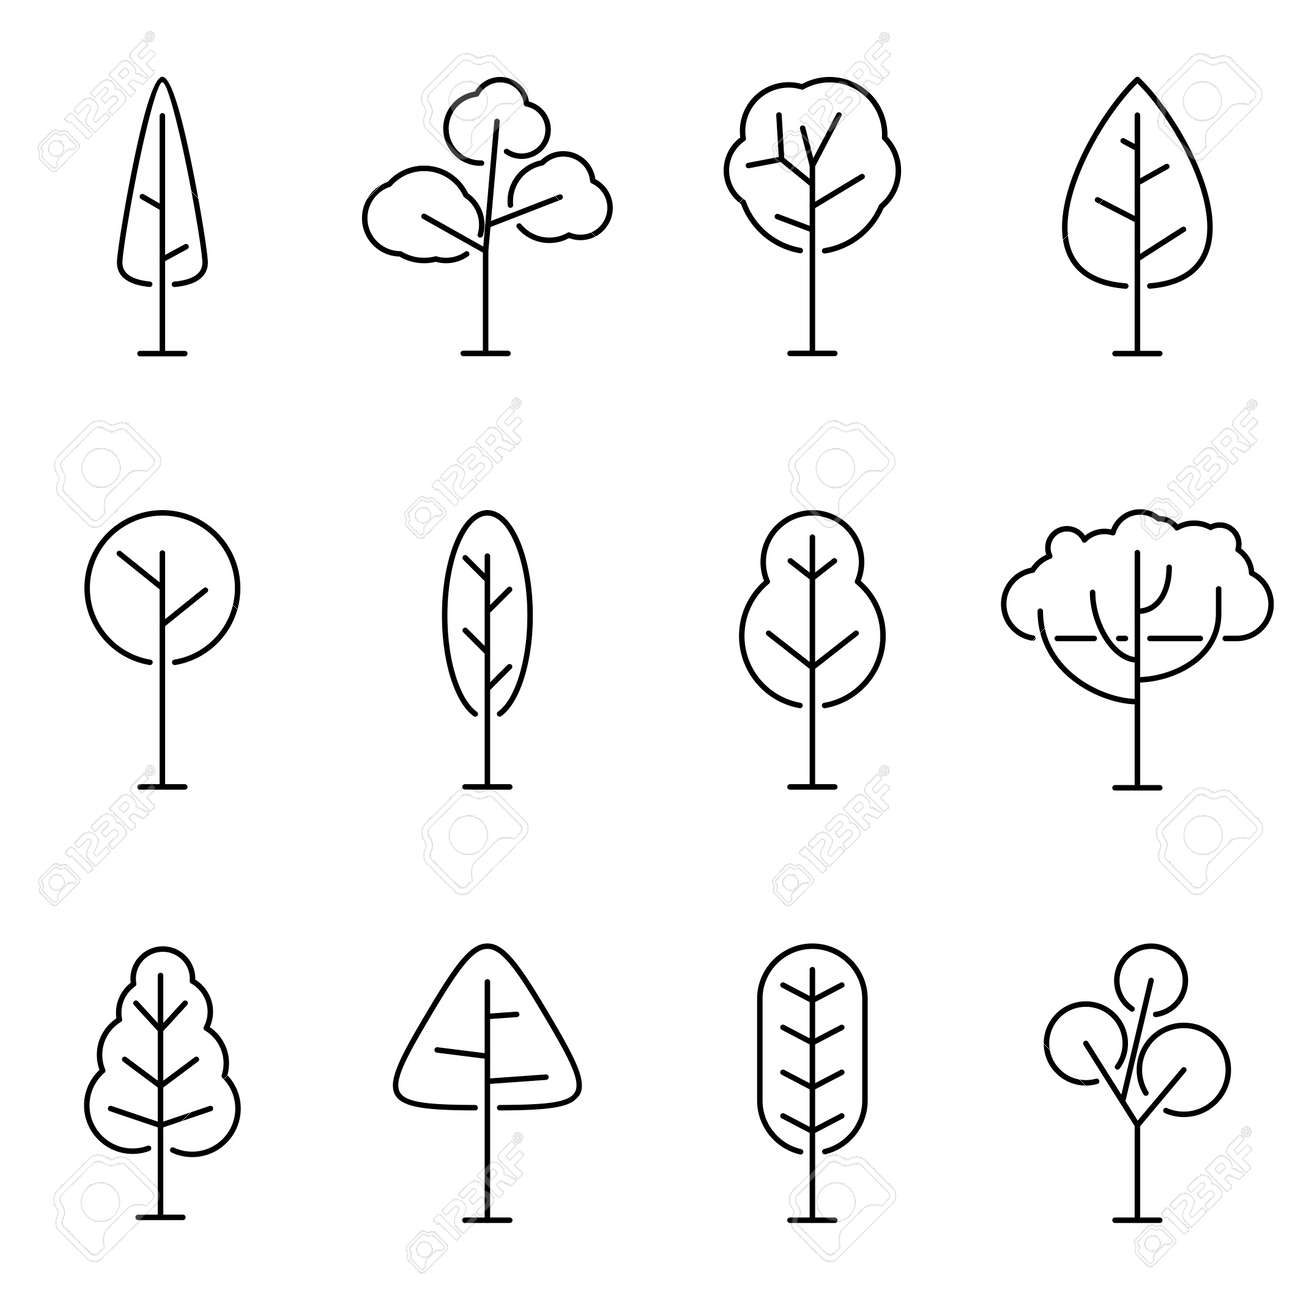 Trees line icon set isolated on white background. Simple and minimalist symbols tree and forest, Vector illustration - 160820976